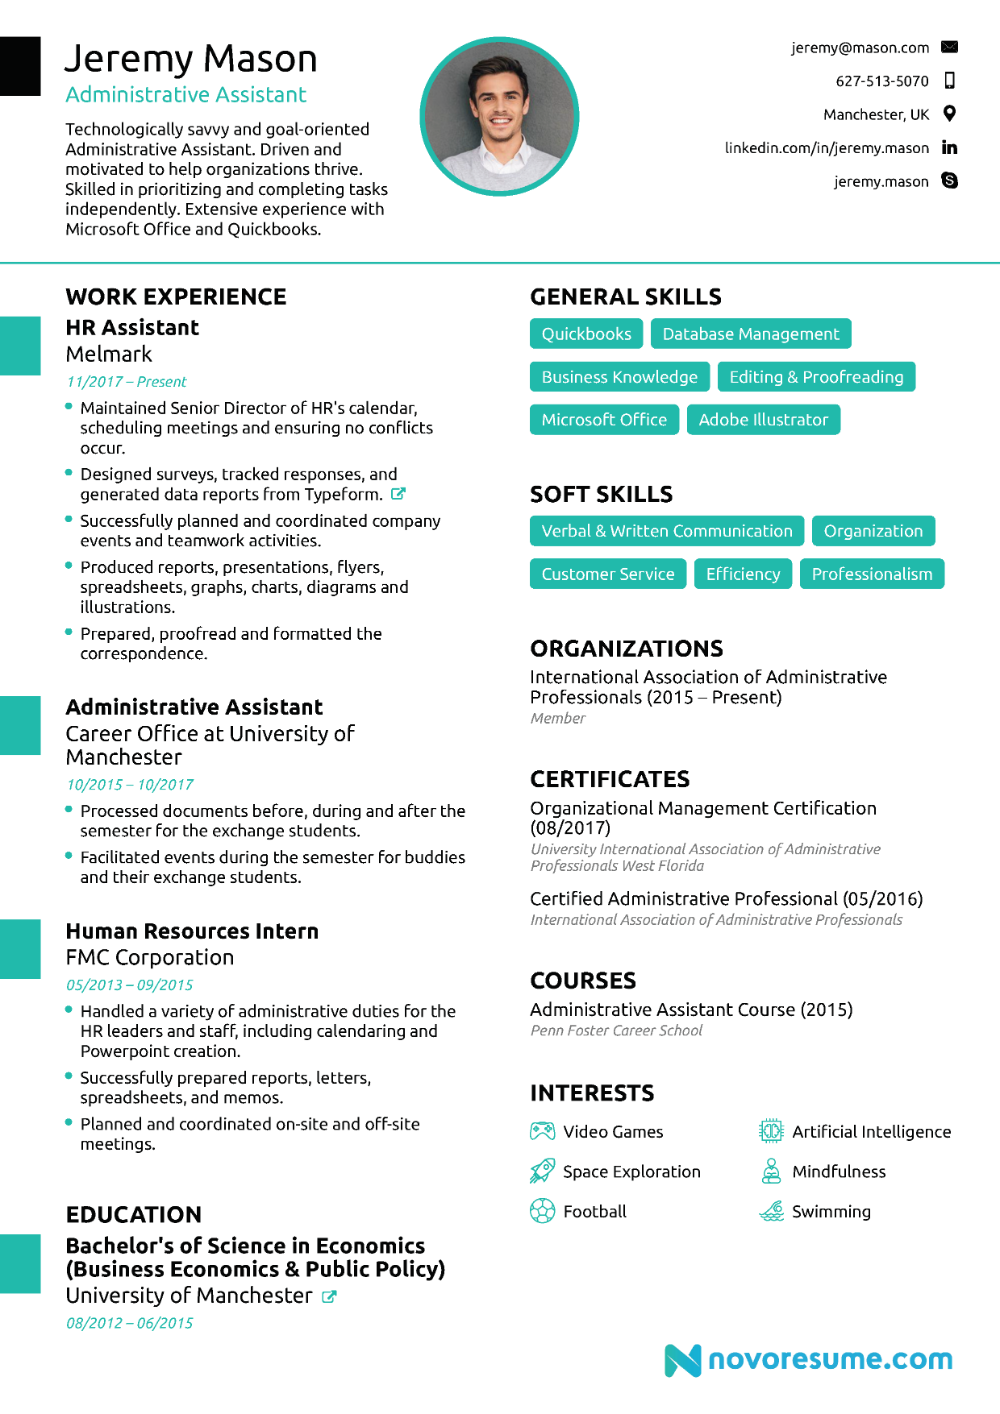 Administrative Assistant Resume [2020] Guide & Examples